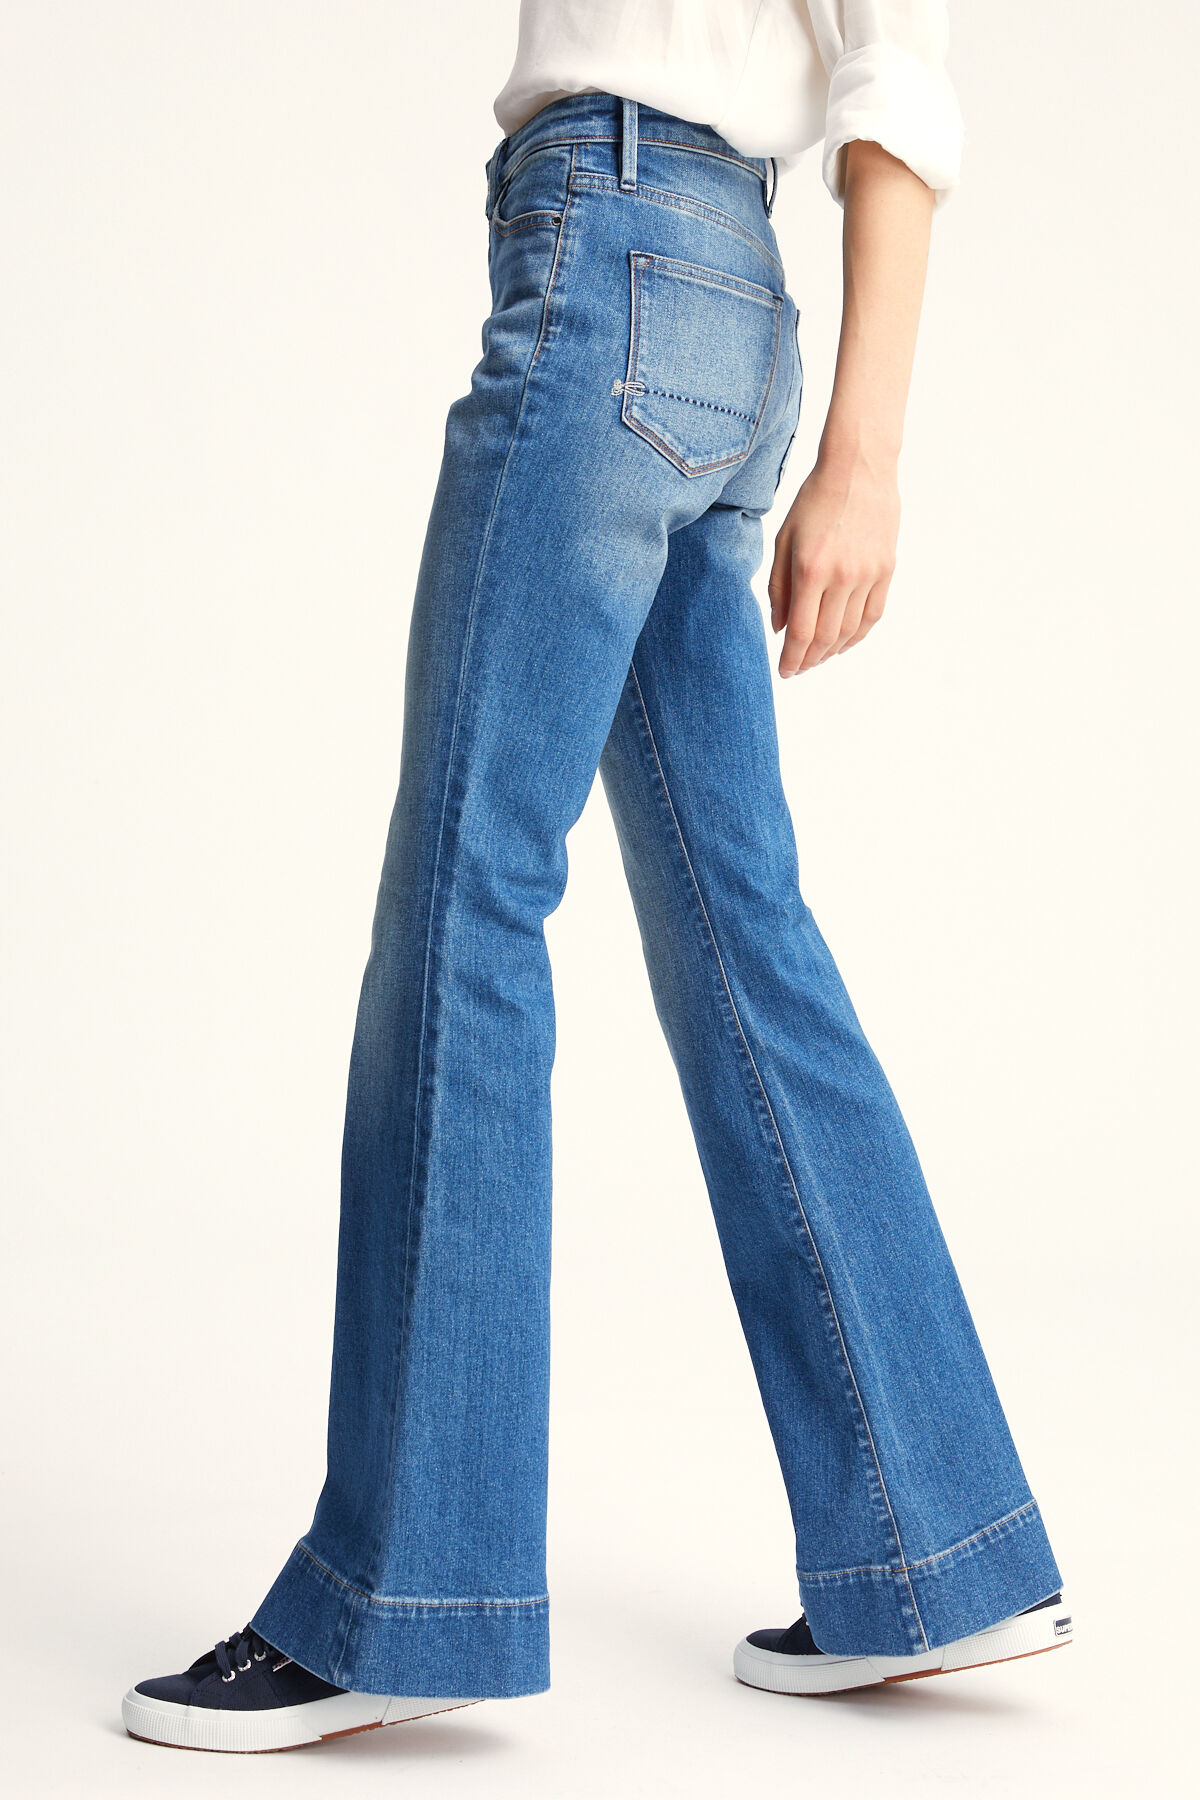 JANE Blue Authentic Denim - Flare Fit